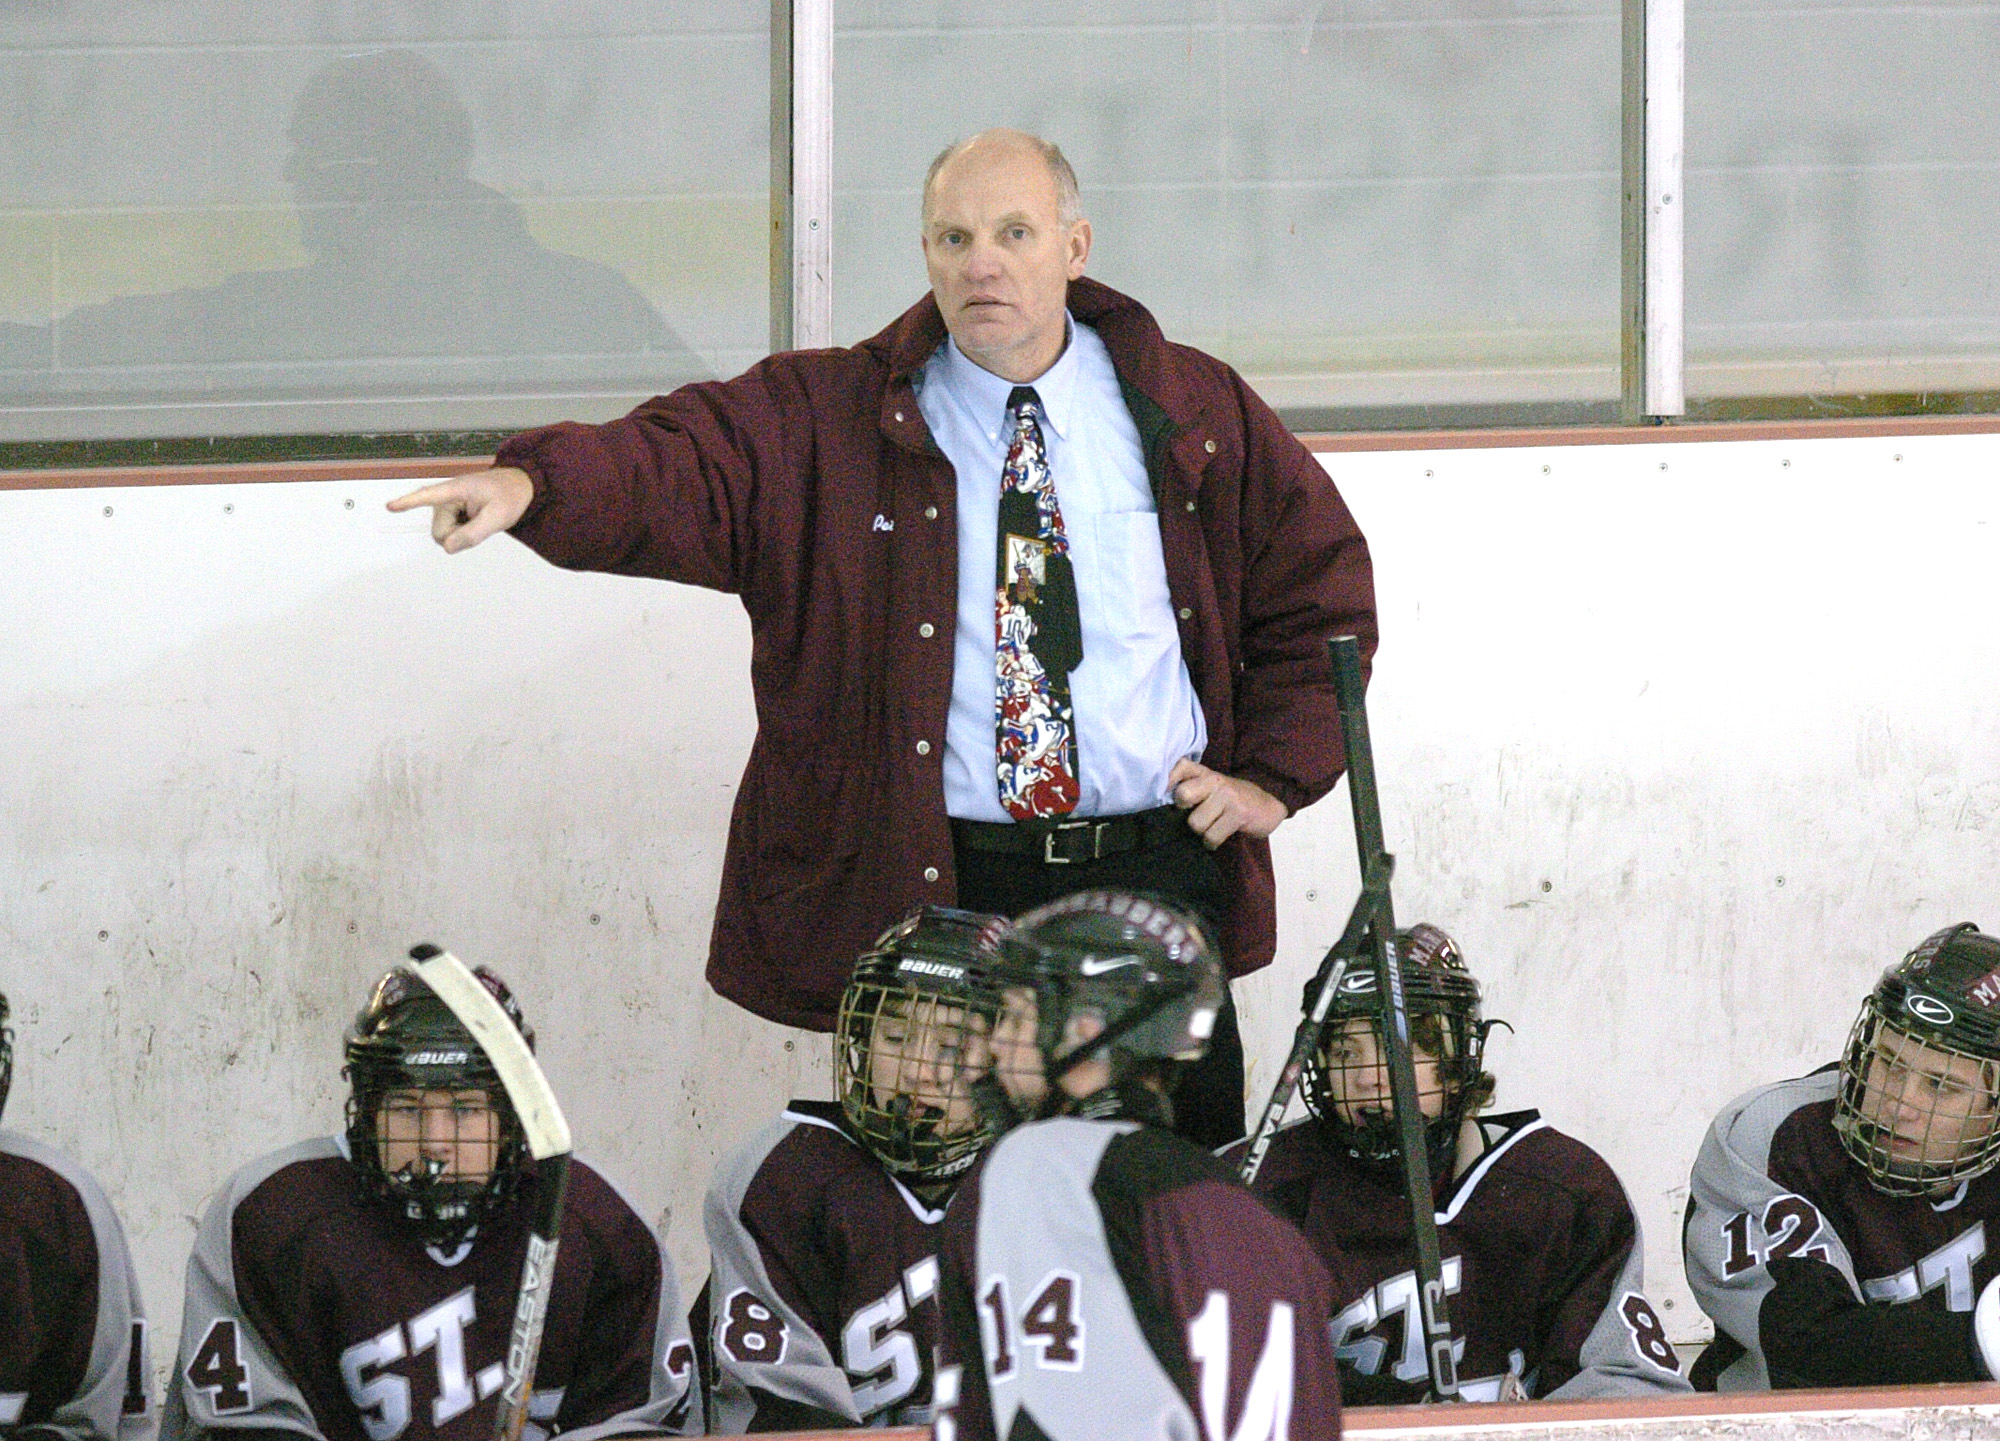 Pete Schneider, pictured here in 2005, ends his 12-year run as being part of the St. Joe's sports leadership group. (James P. McCoy/Buffalo News)